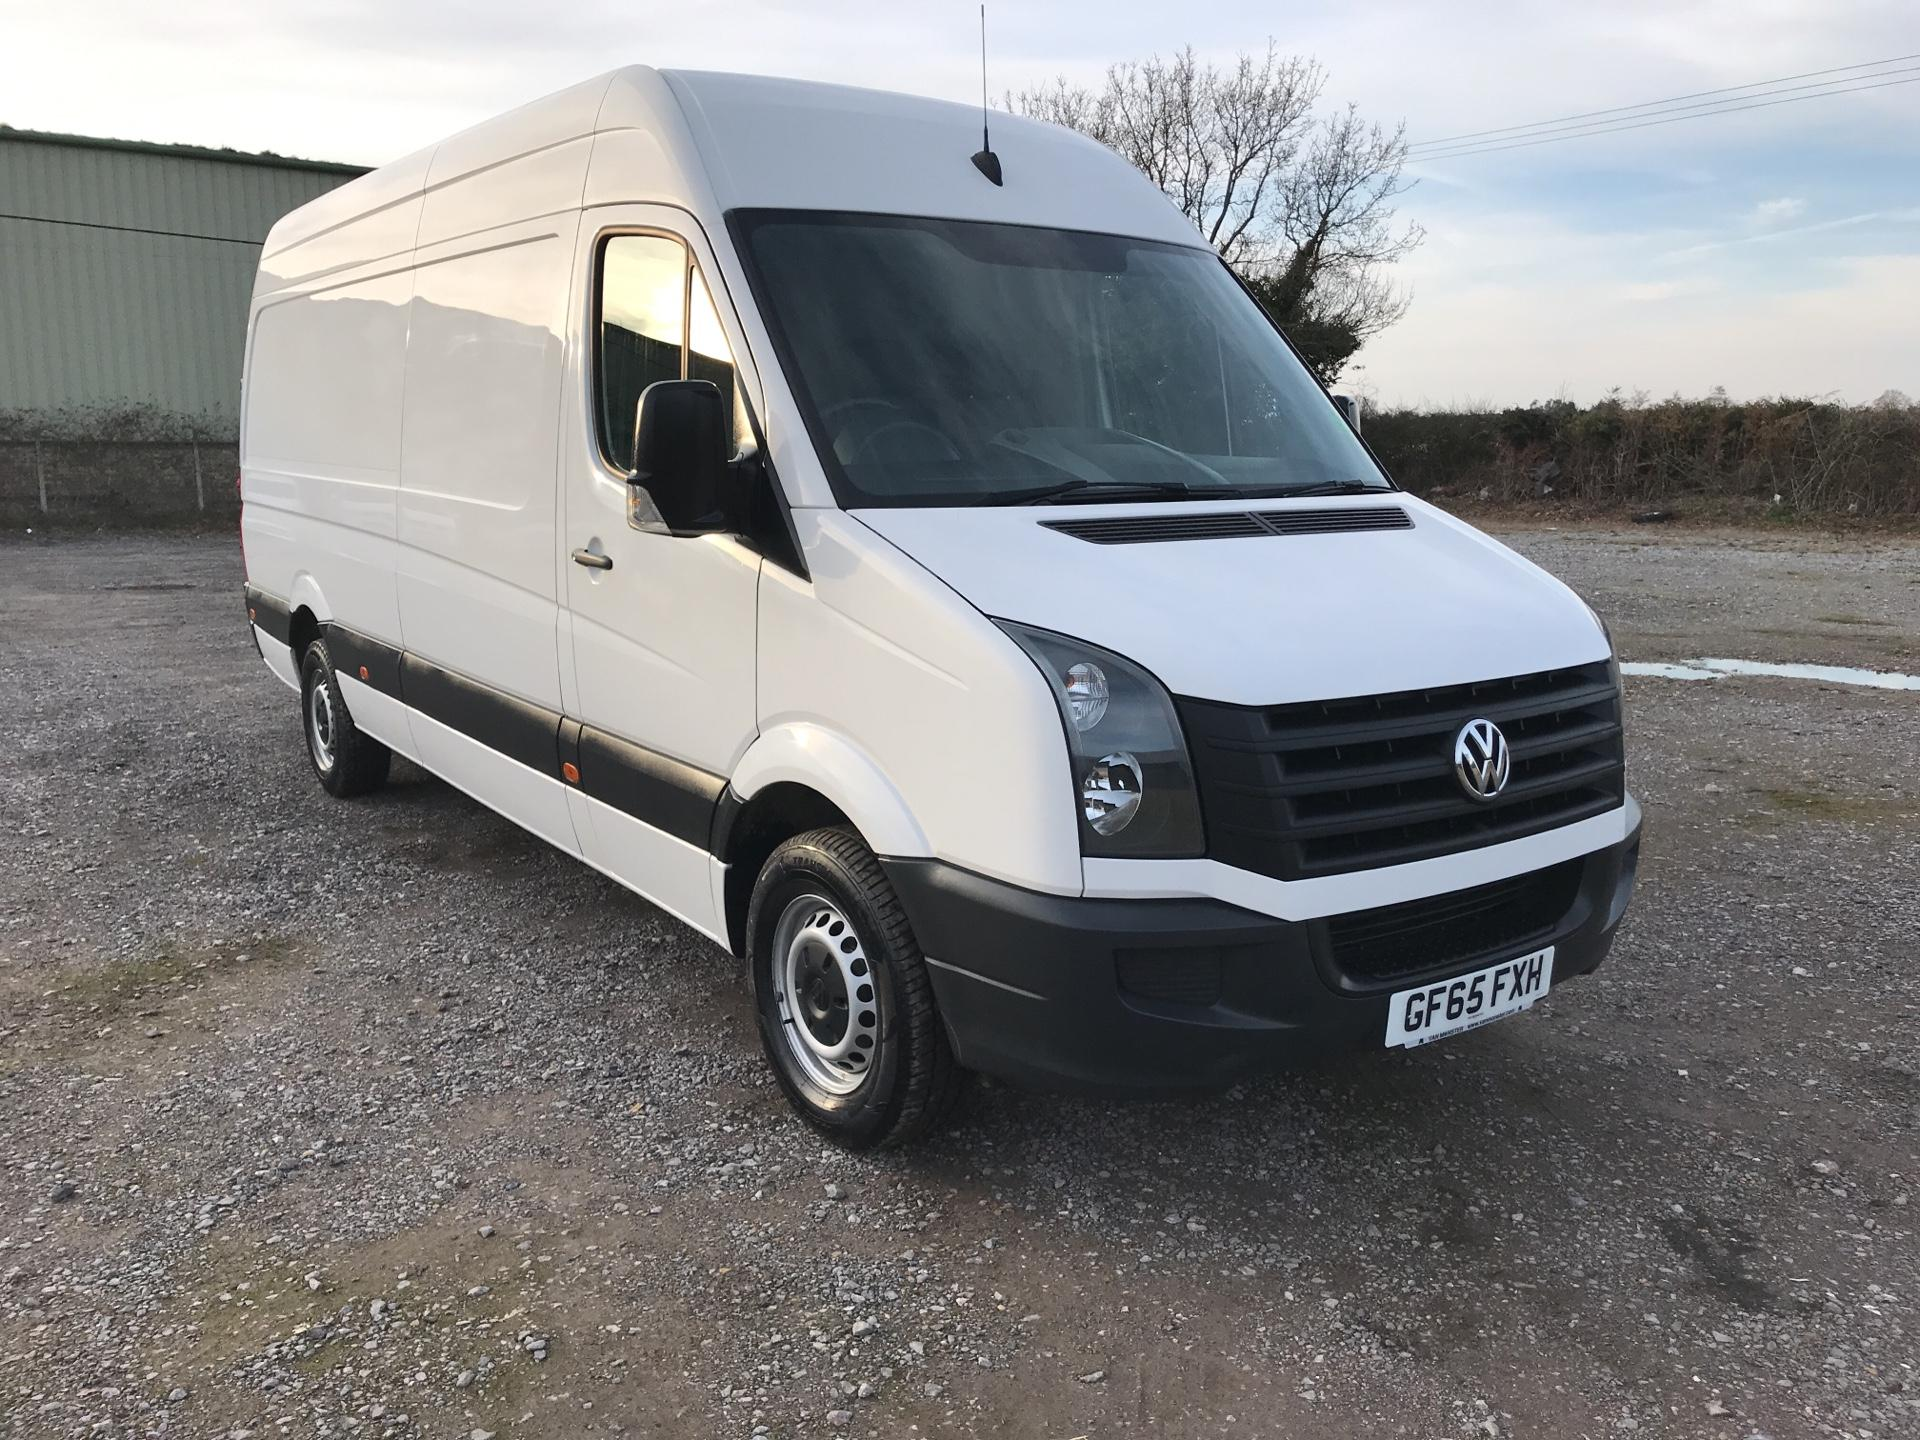 2015 Volkswagen Crafter CR35 LWB 2.0 136PS HIGH ROOF EURO 5 (GF65FXH)